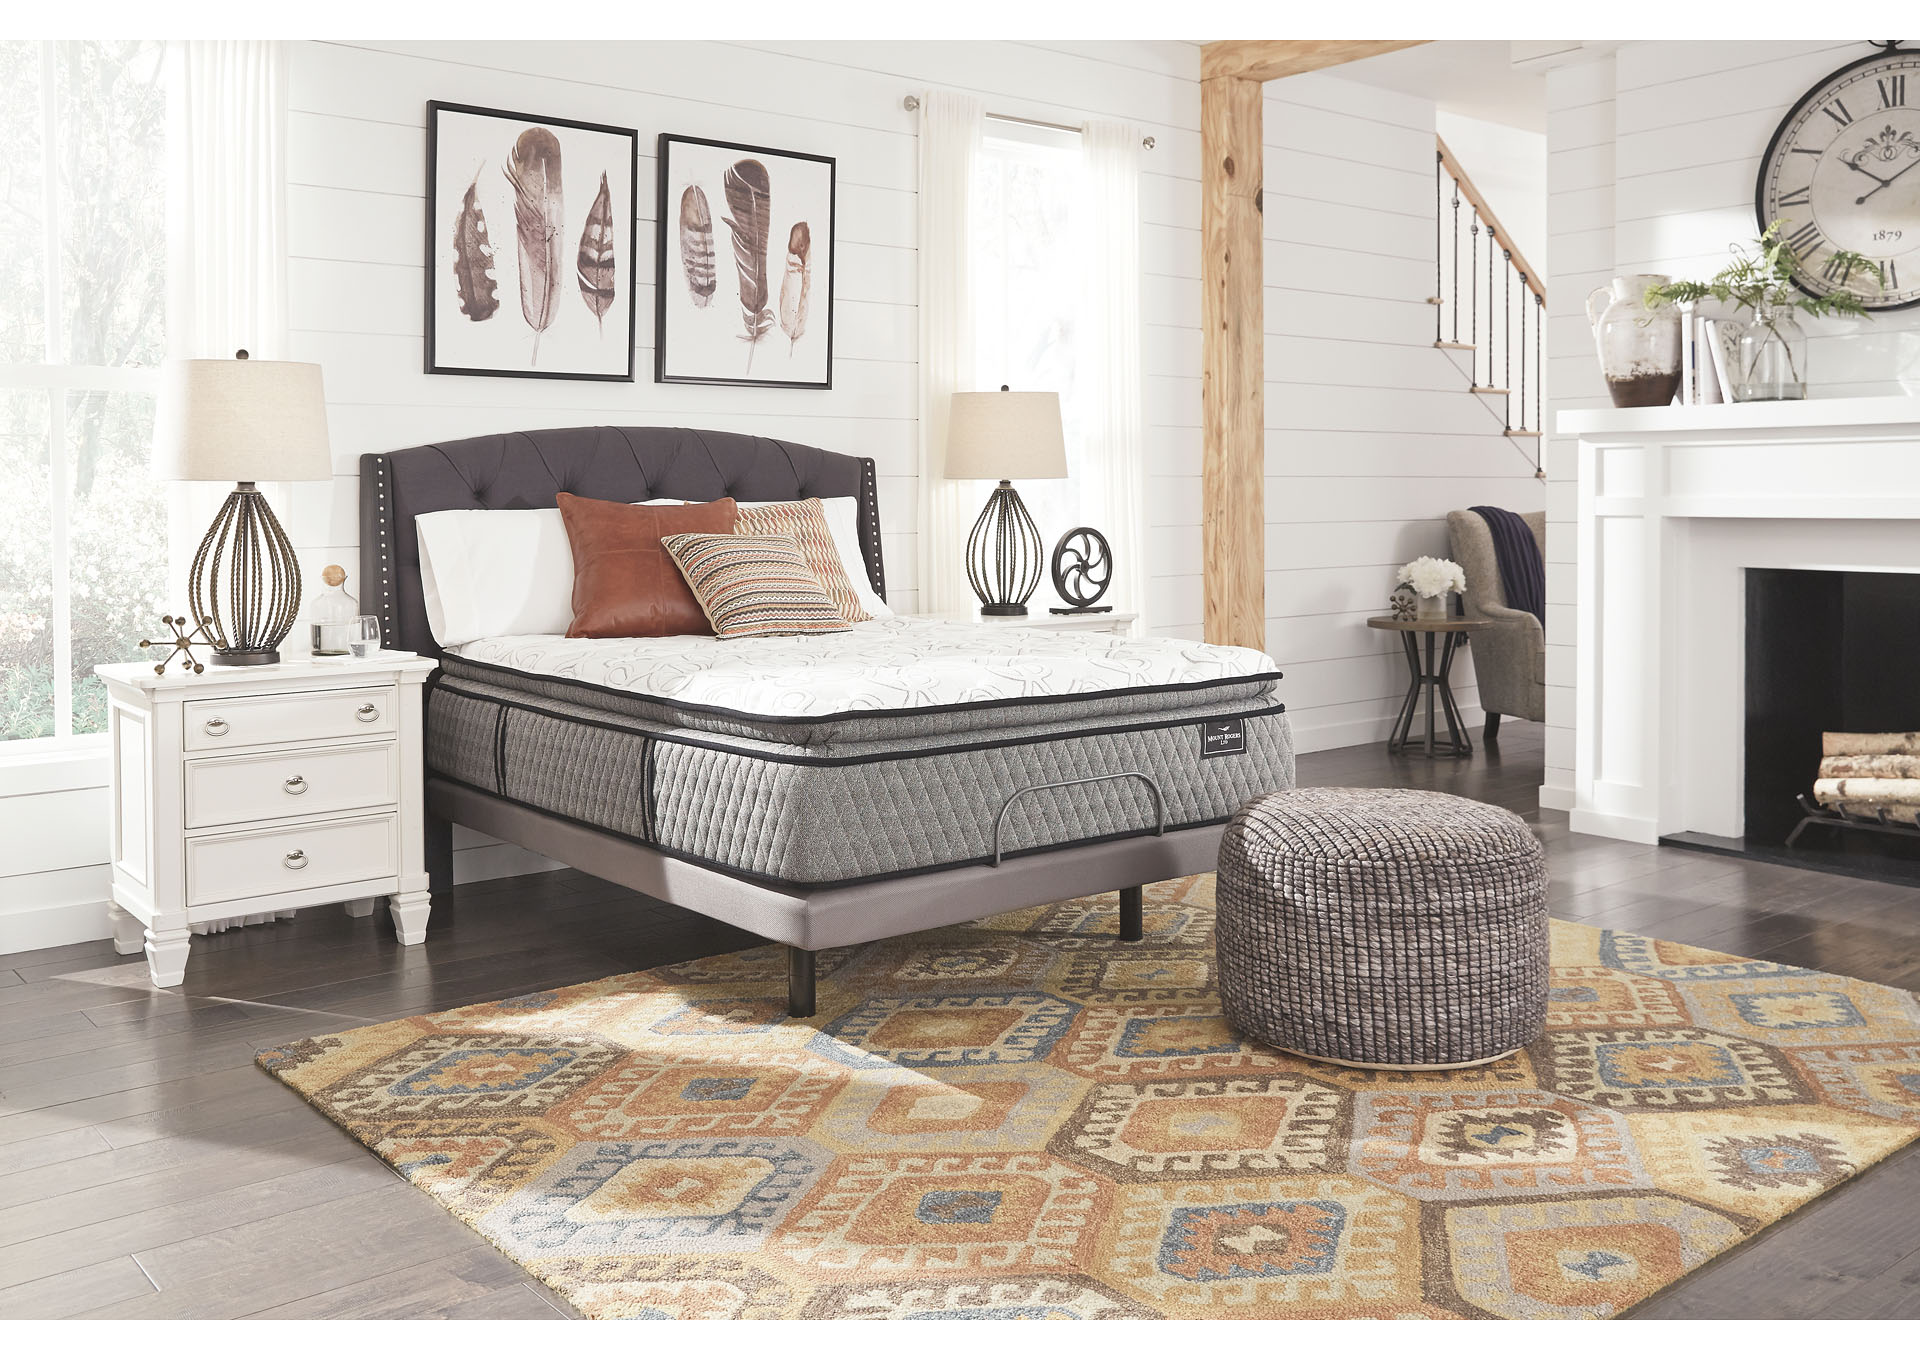 Mt. Rogers Limited Pillowtop White Queen Mattress w/Adjustable Base,Sierra Sleep by Ashley